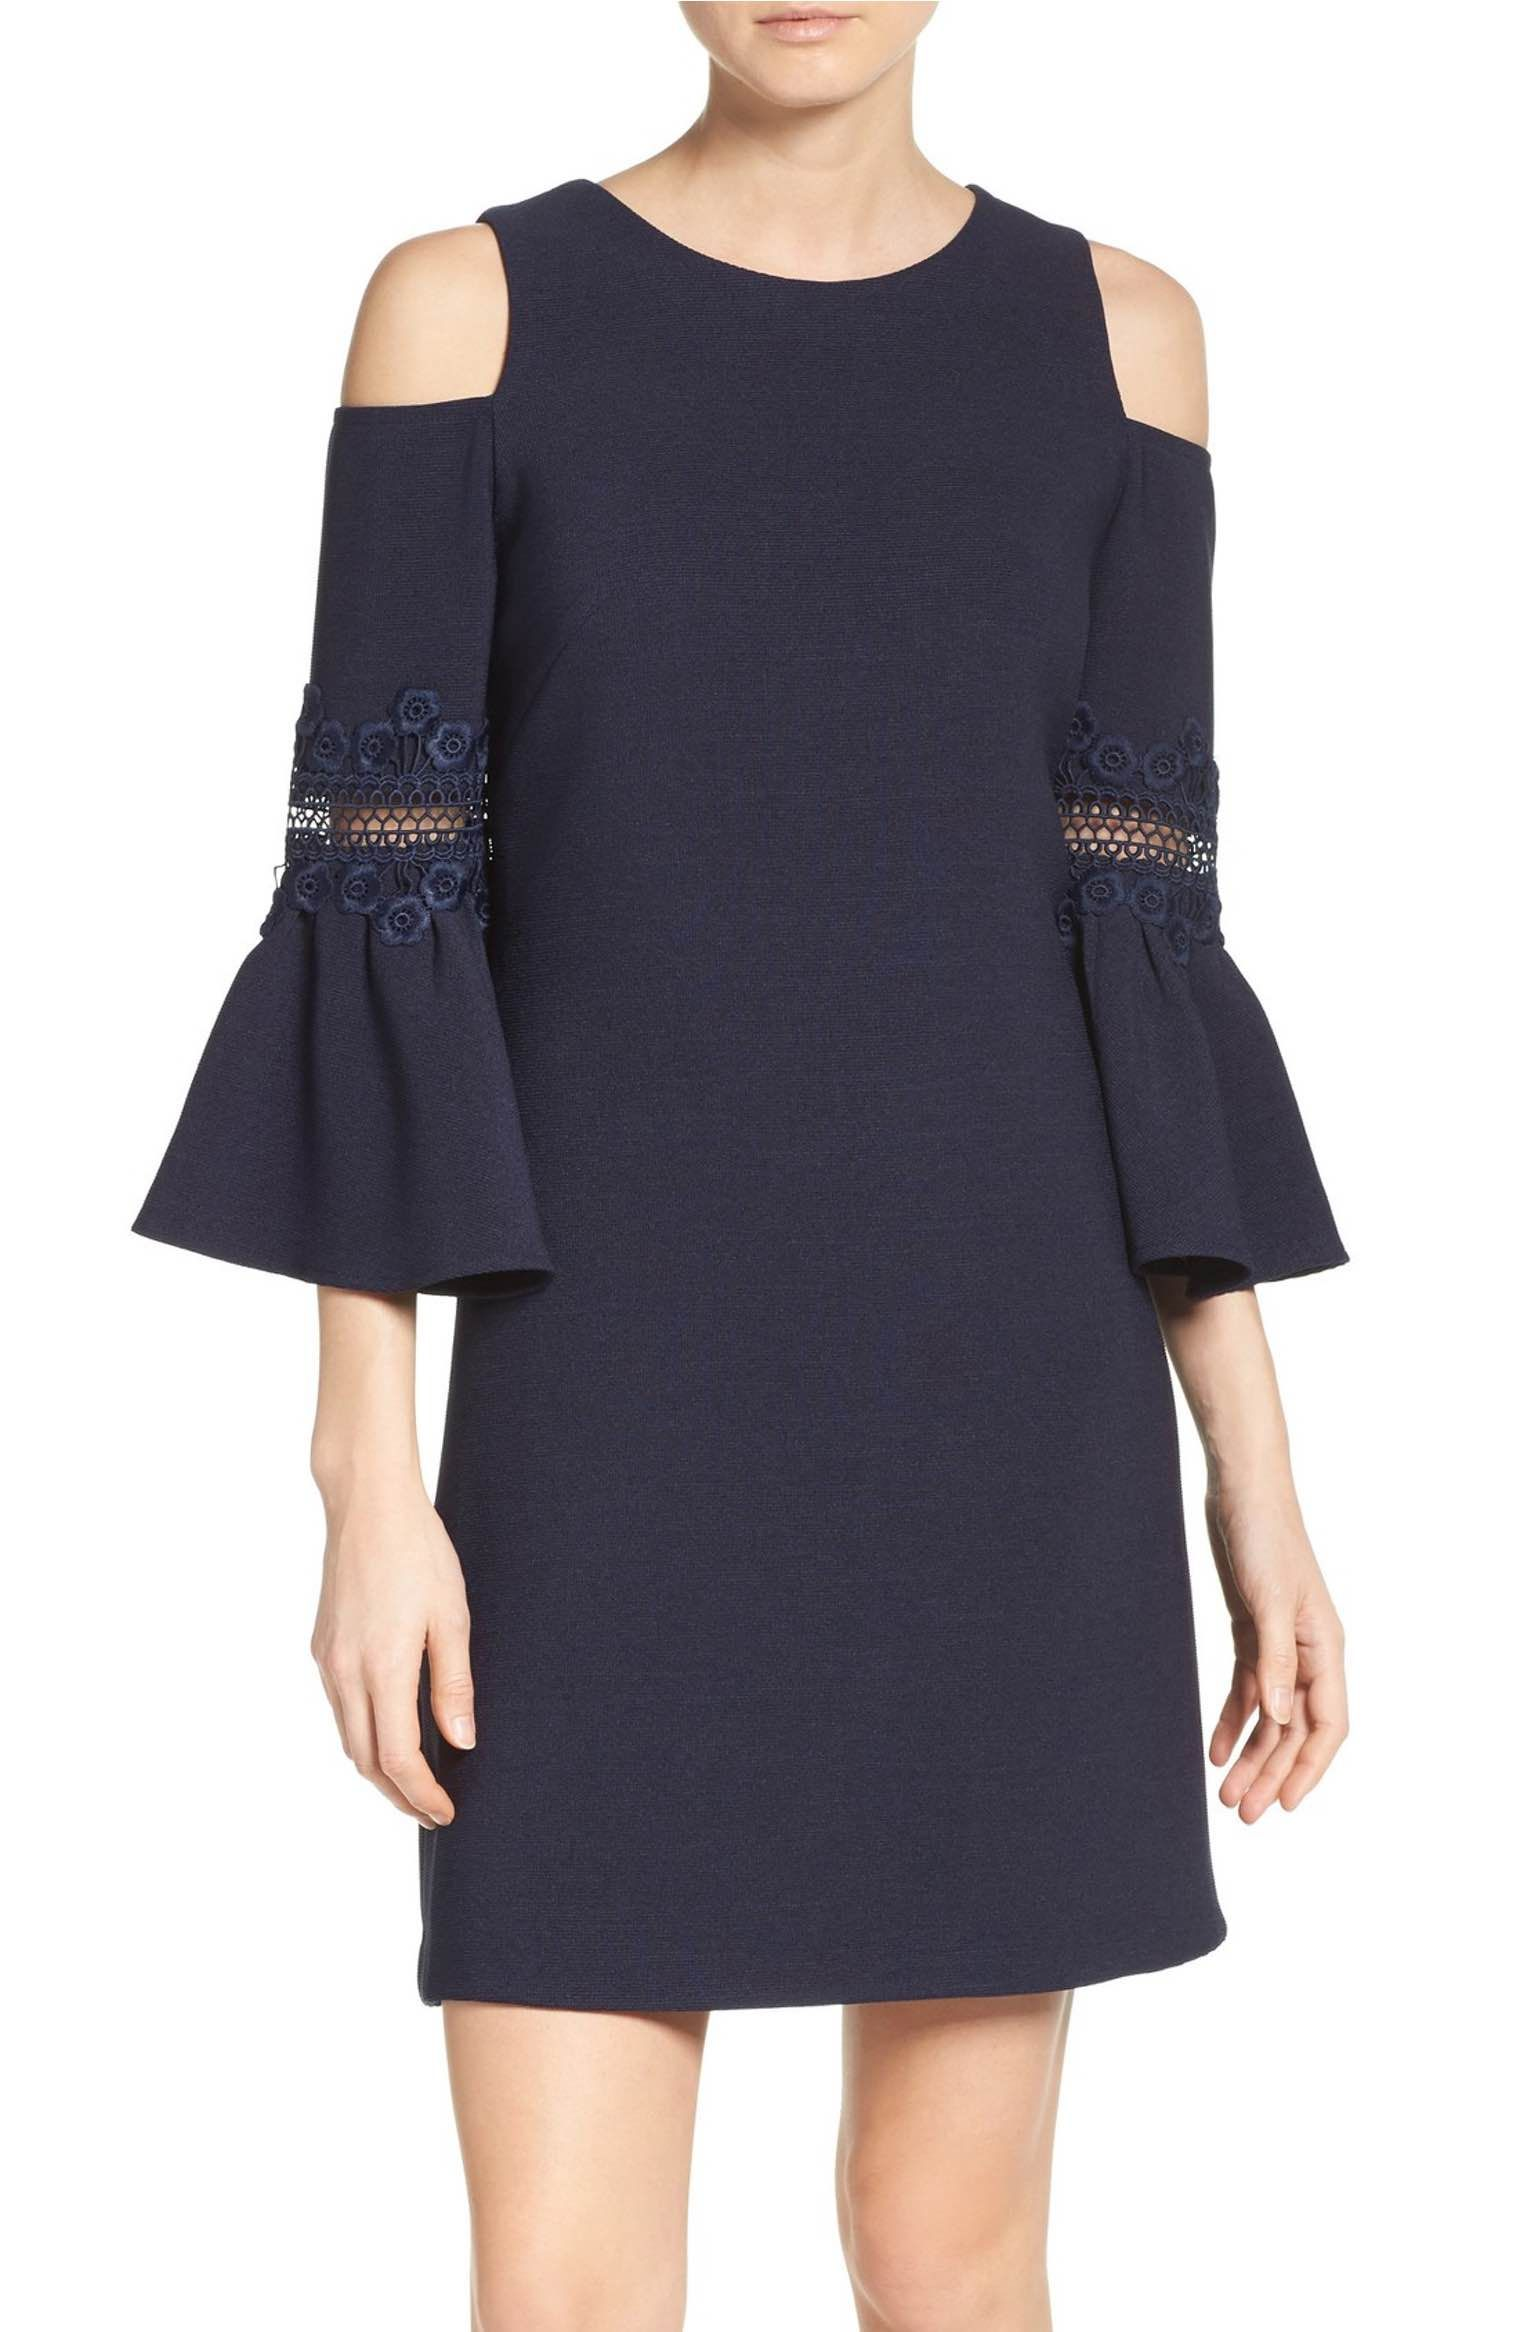 Lace appliqué crepe cold shoulder dress shoulder dress cold